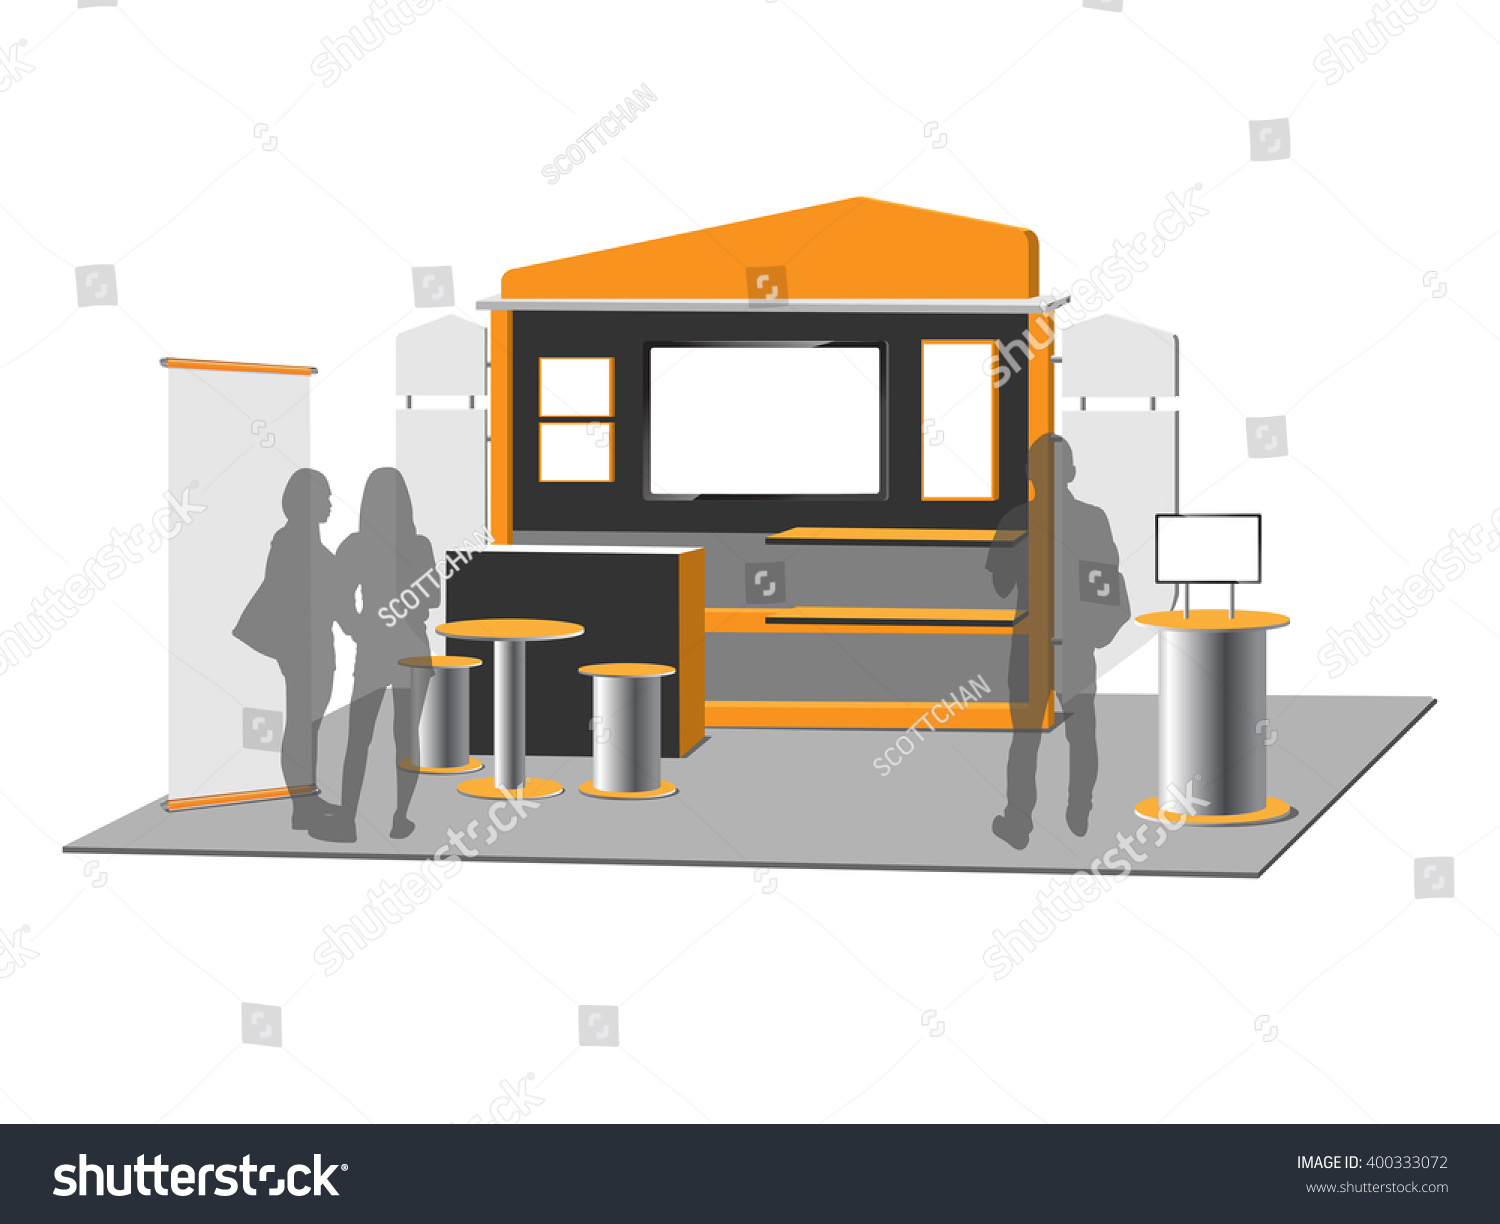 Simple Exhibition Stand Vector : Blank trade exhibition stand vector